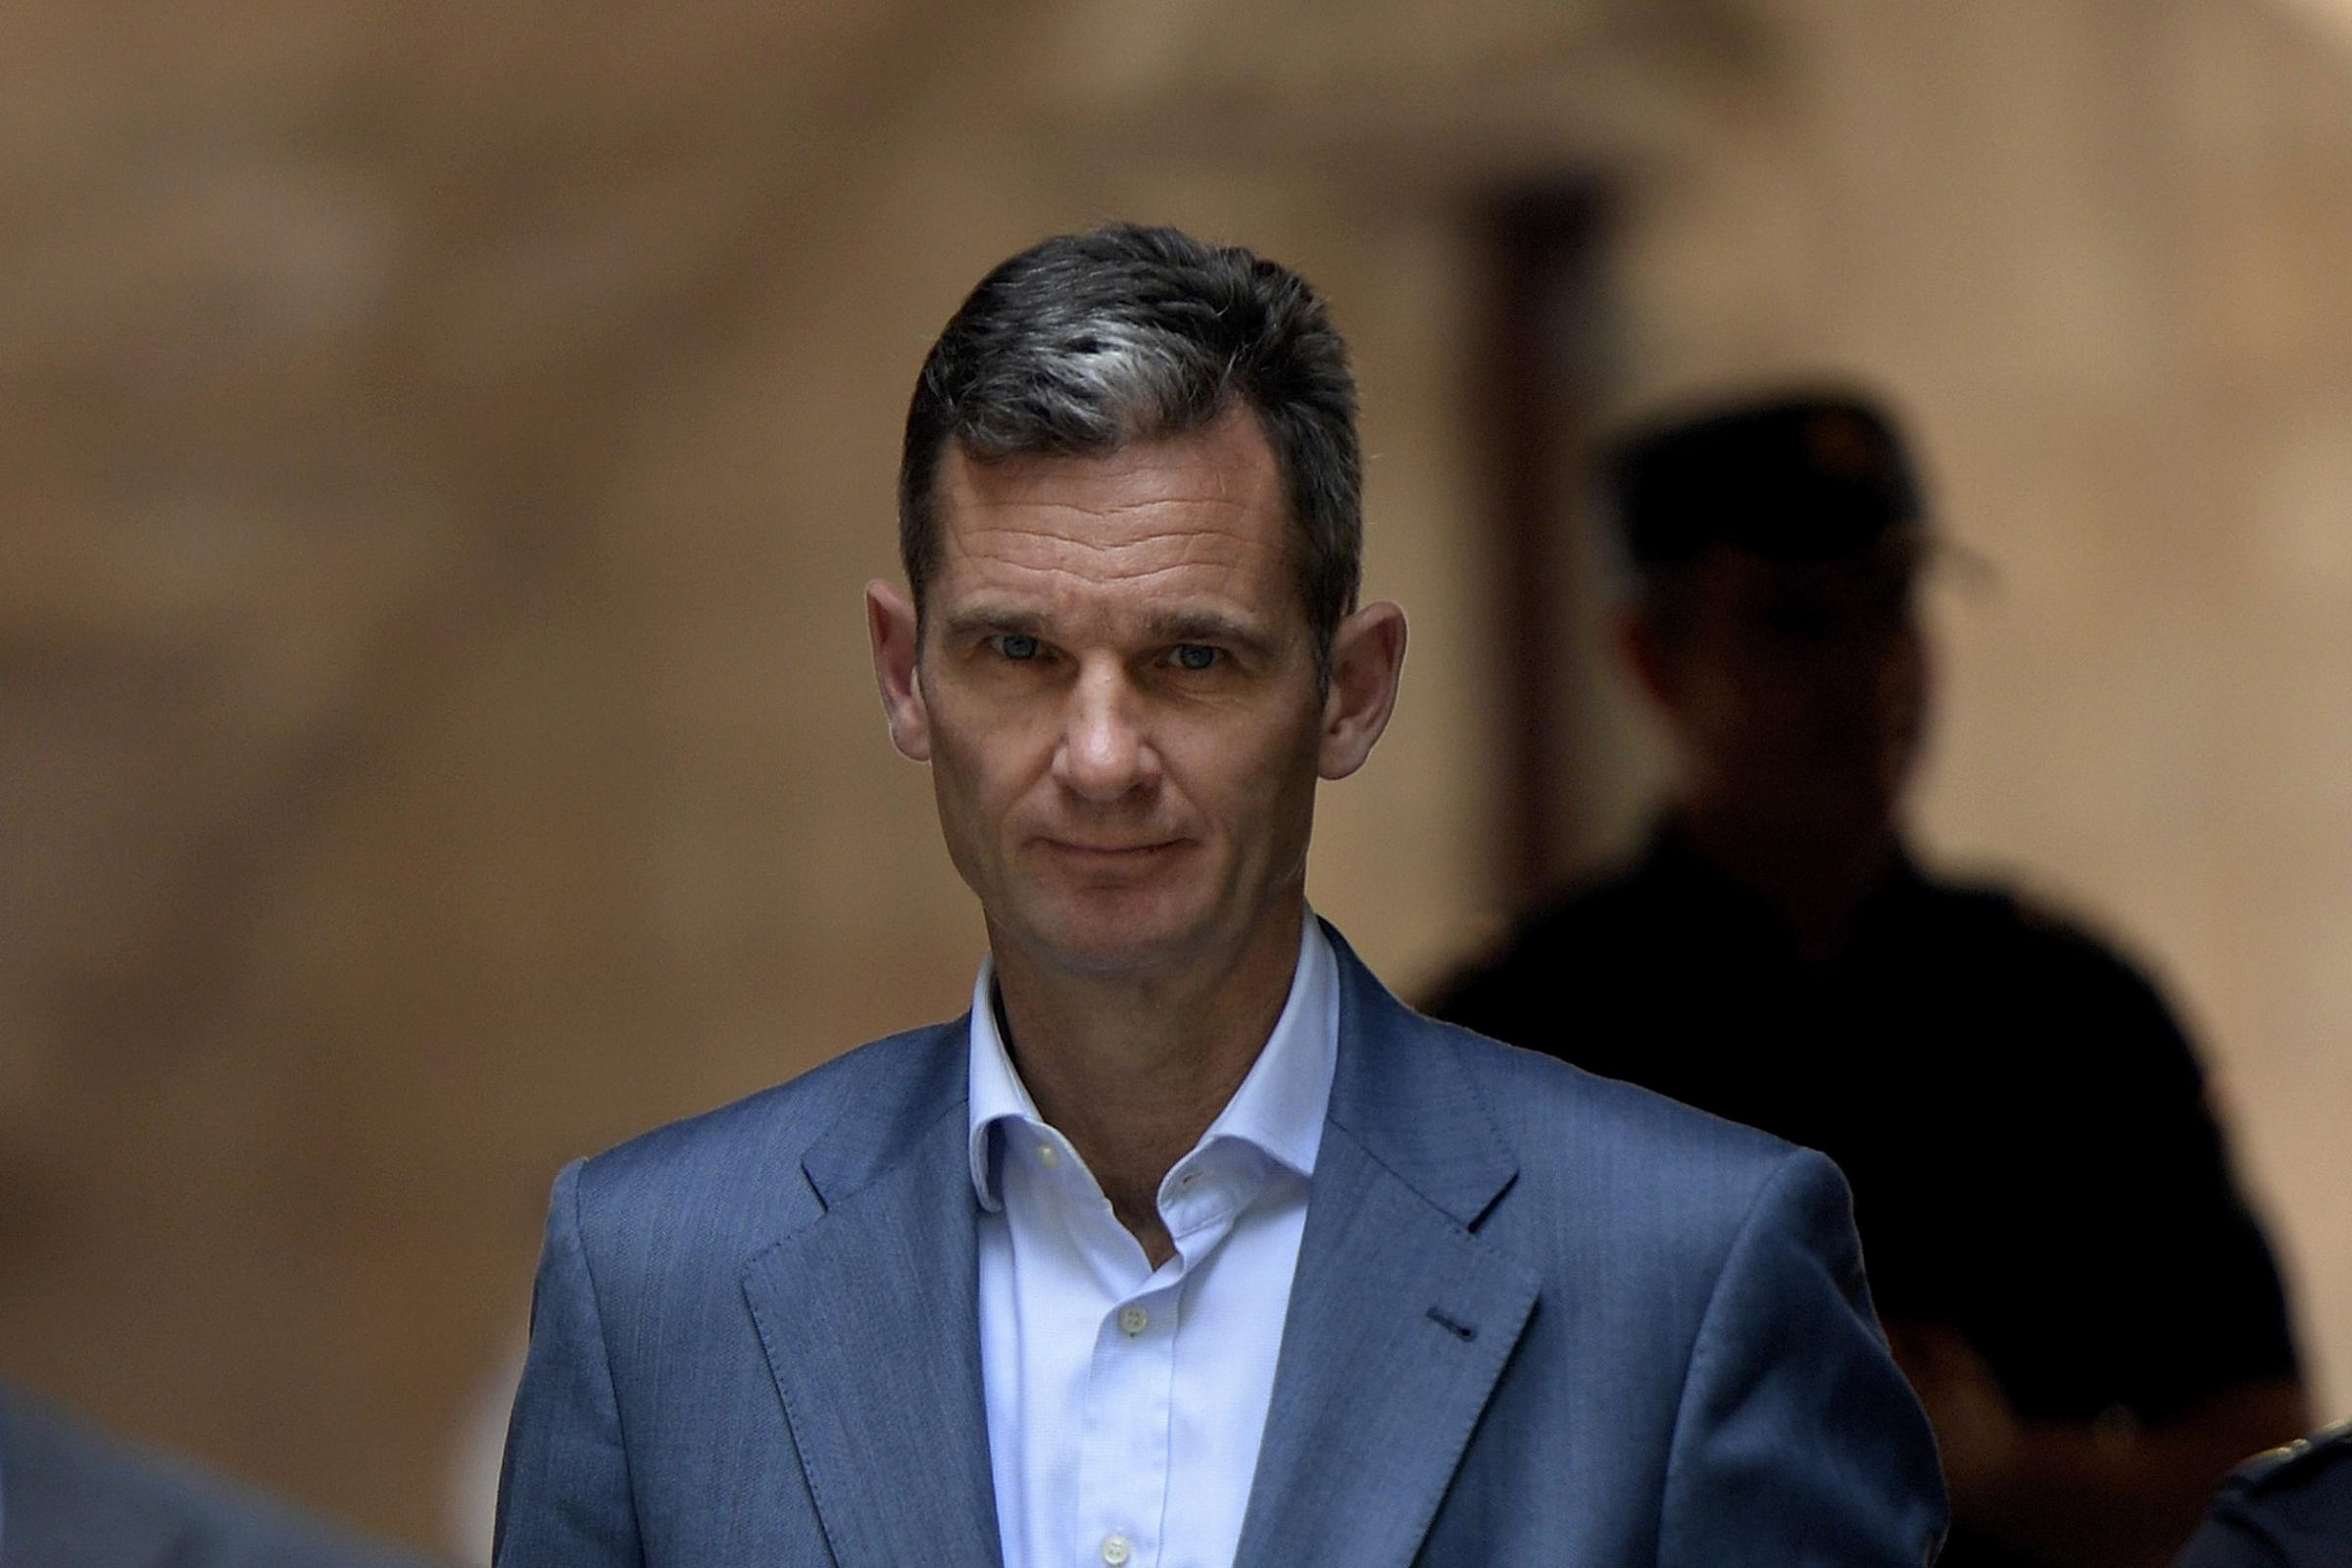 Husband of Spanish princess given five days to report to prison